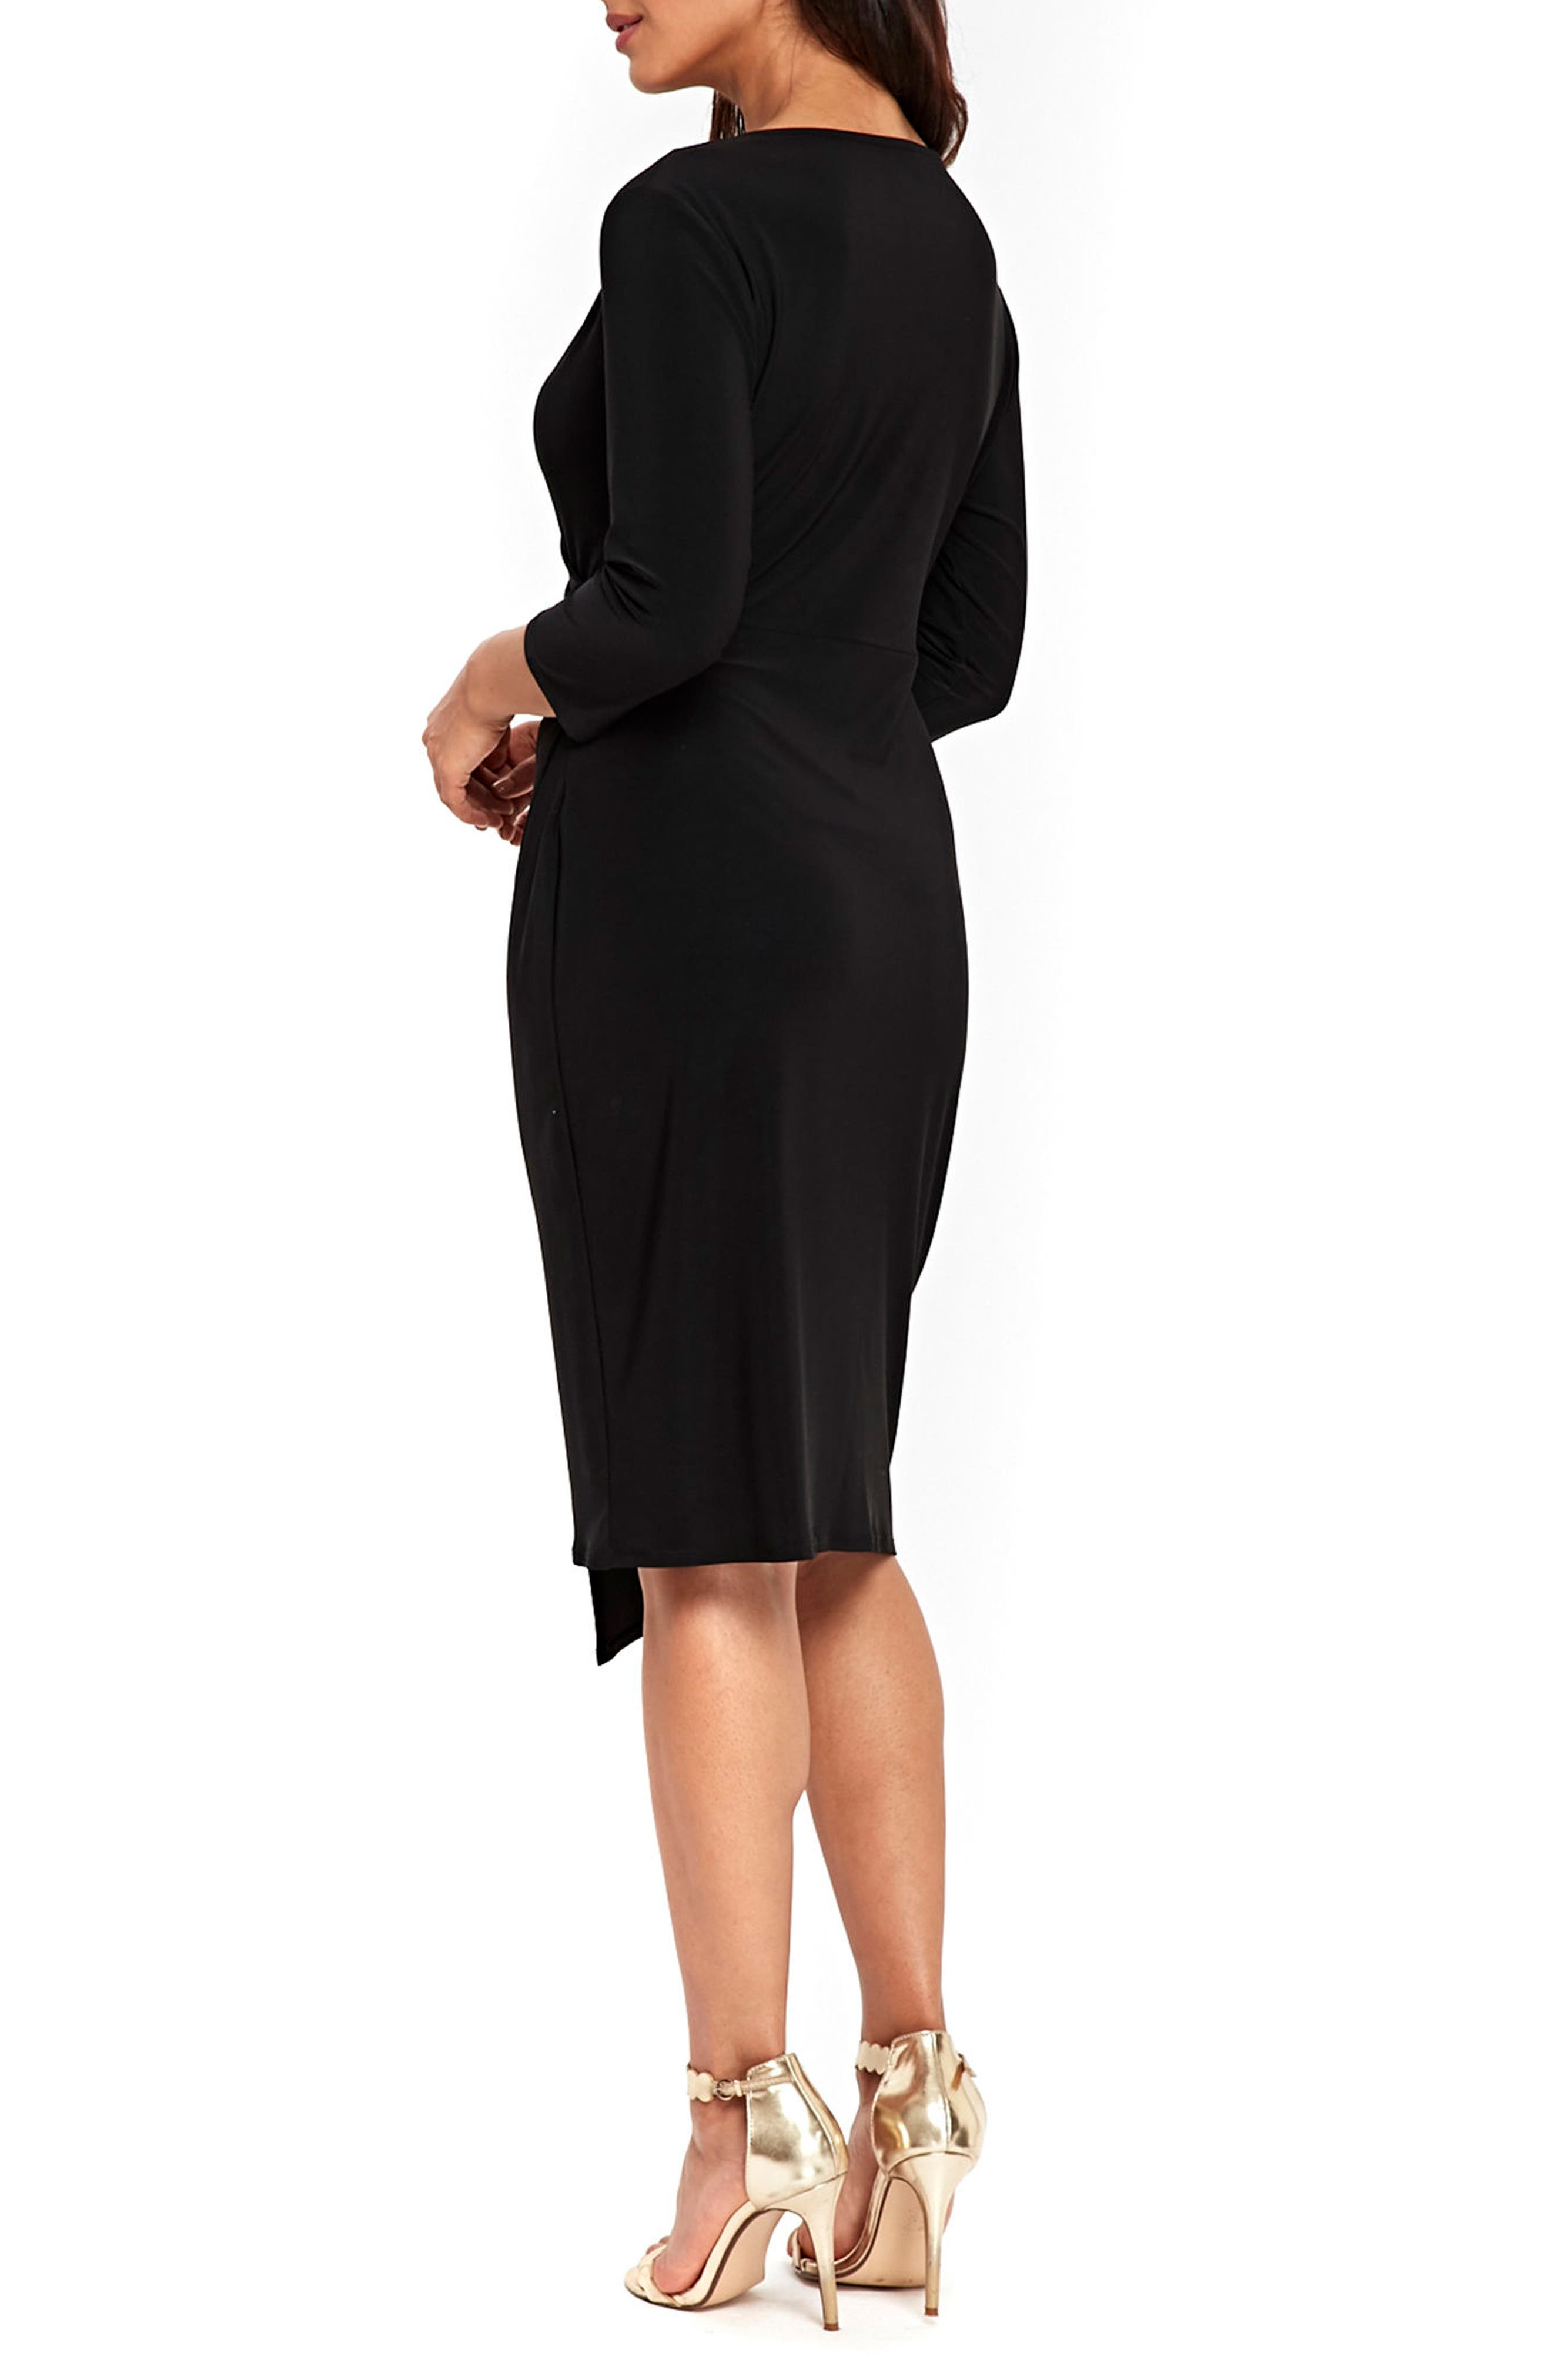 Ity Wrap Dress,                             Alternate thumbnail 2, color,                             001